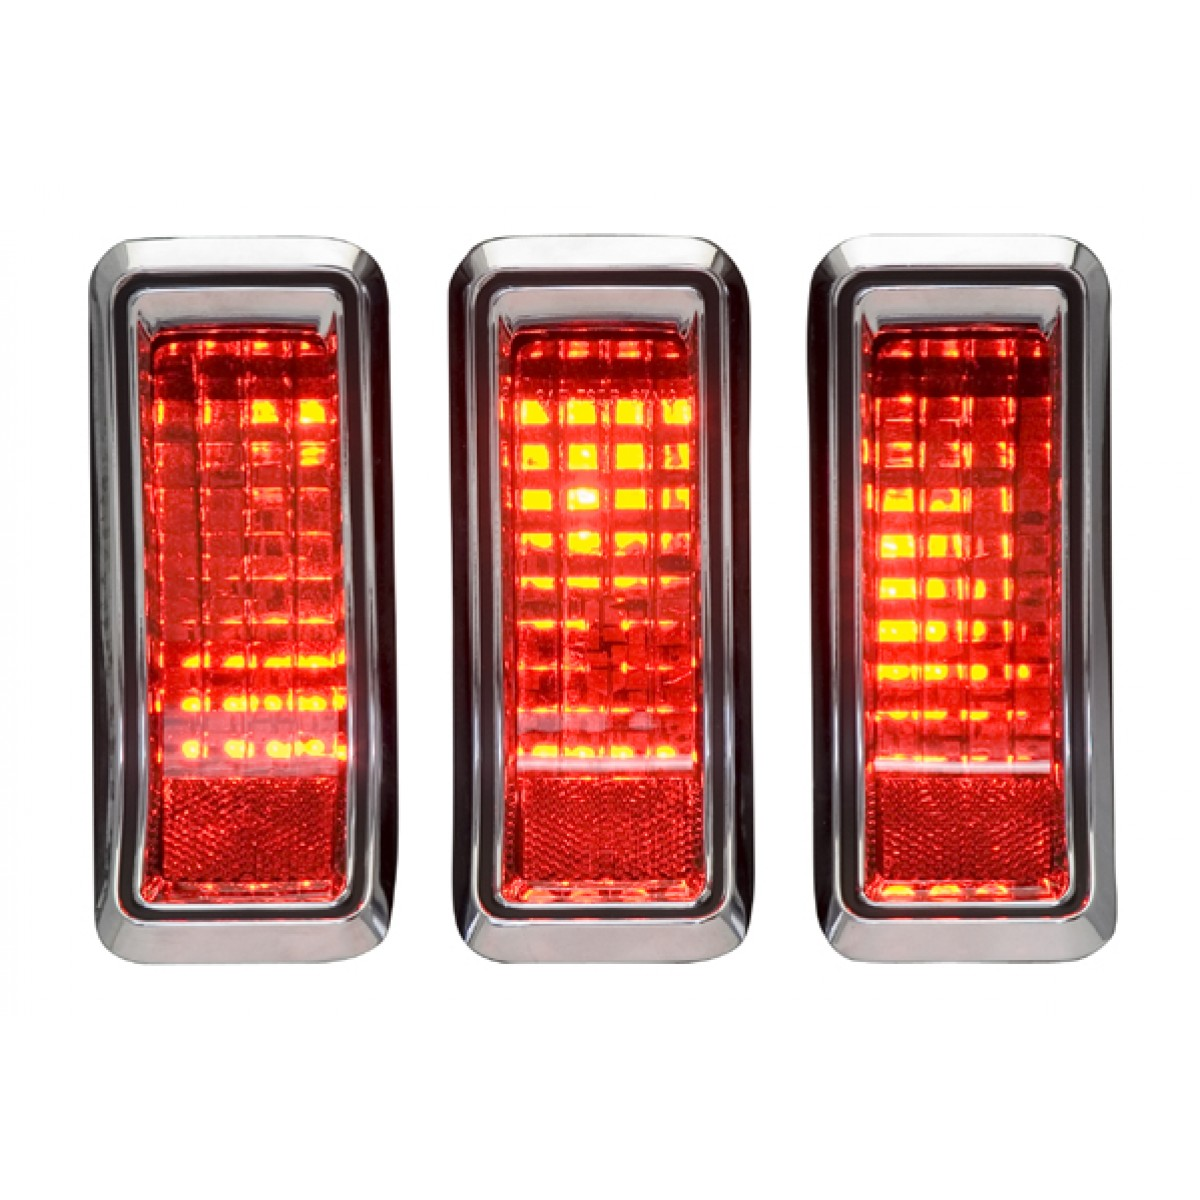 1967 - 1968 Mustang LED Tail Lights - Dakota Digital LAT-NR362 ...  Mustang Tail Light Wire Harness on 1967 mustang custom grille, 1981 mustang tail lights, 1967 mustang dash lights, 70 dodge challenger tail lights, 1968 mustang tail lights, 1982 mustang tail lights, 1967 mustang hub caps, 1967 mustang turn signals, 1967 mustang window trim, 1969 mustang tail lights, 1967 mustang battery, 1979 mustang tail lights, 1967 mustang mirrors, 1985 mustang tail lights, 1958 thunderbird tail lights, 1966 mustang tail lights, 1970 mustang tail lights, 1964 mustang tail lights, 1977 mustang tail lights, 1967 mustang clutch,